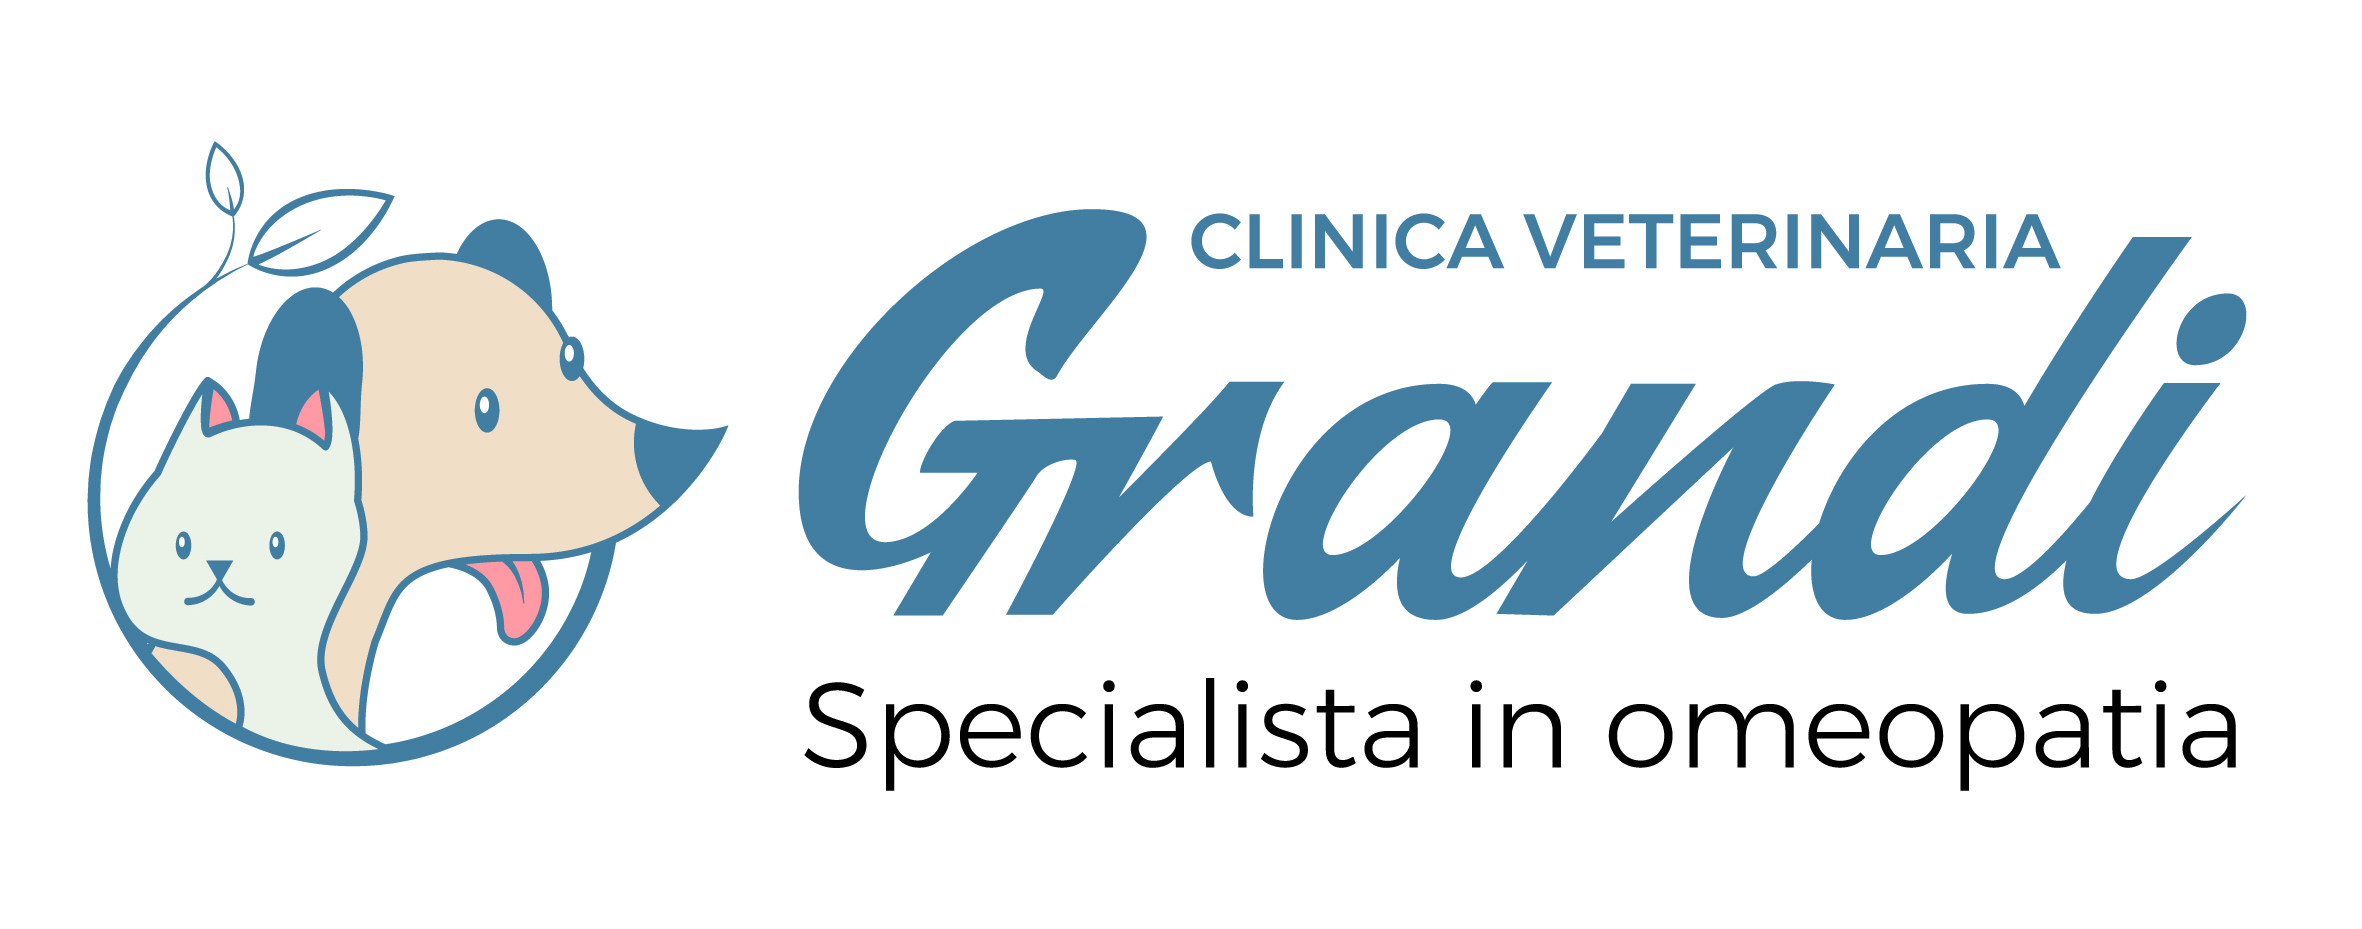 Clinica Veterinaria Grandi